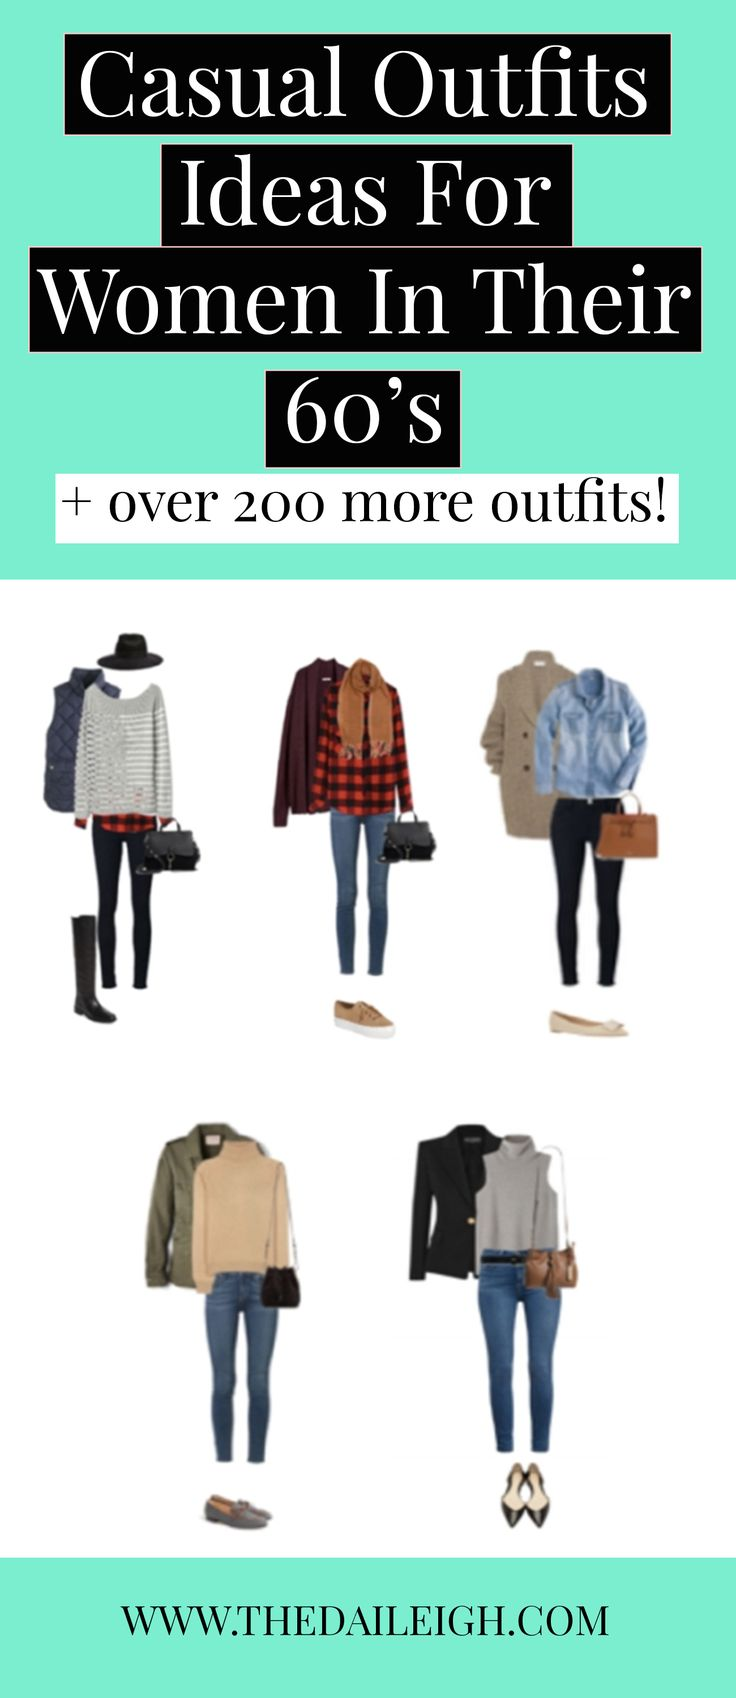 ABLE Leather Bags, Women's Jeans, Apparel & Shoes 28